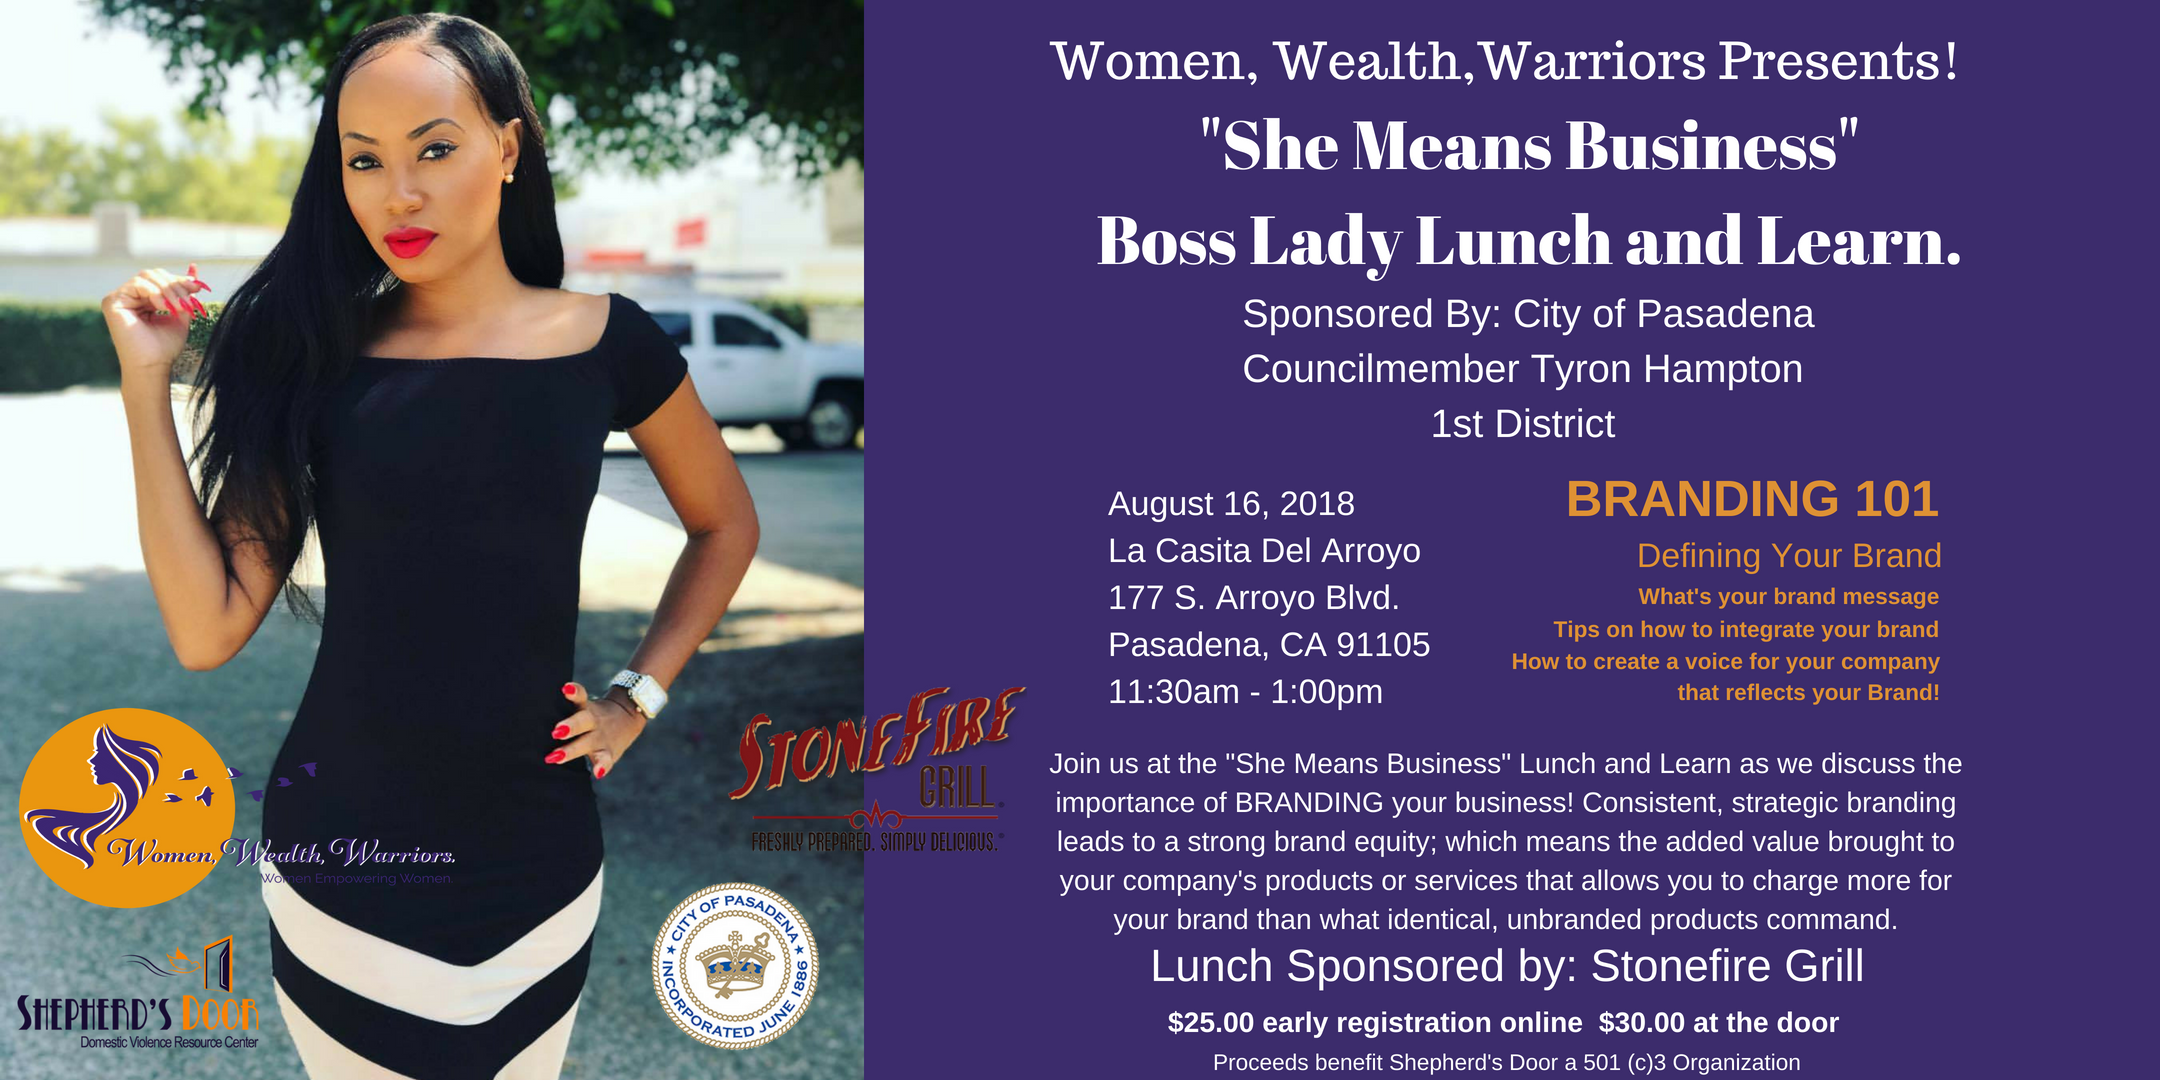 Women Wealth Warriors Presents!